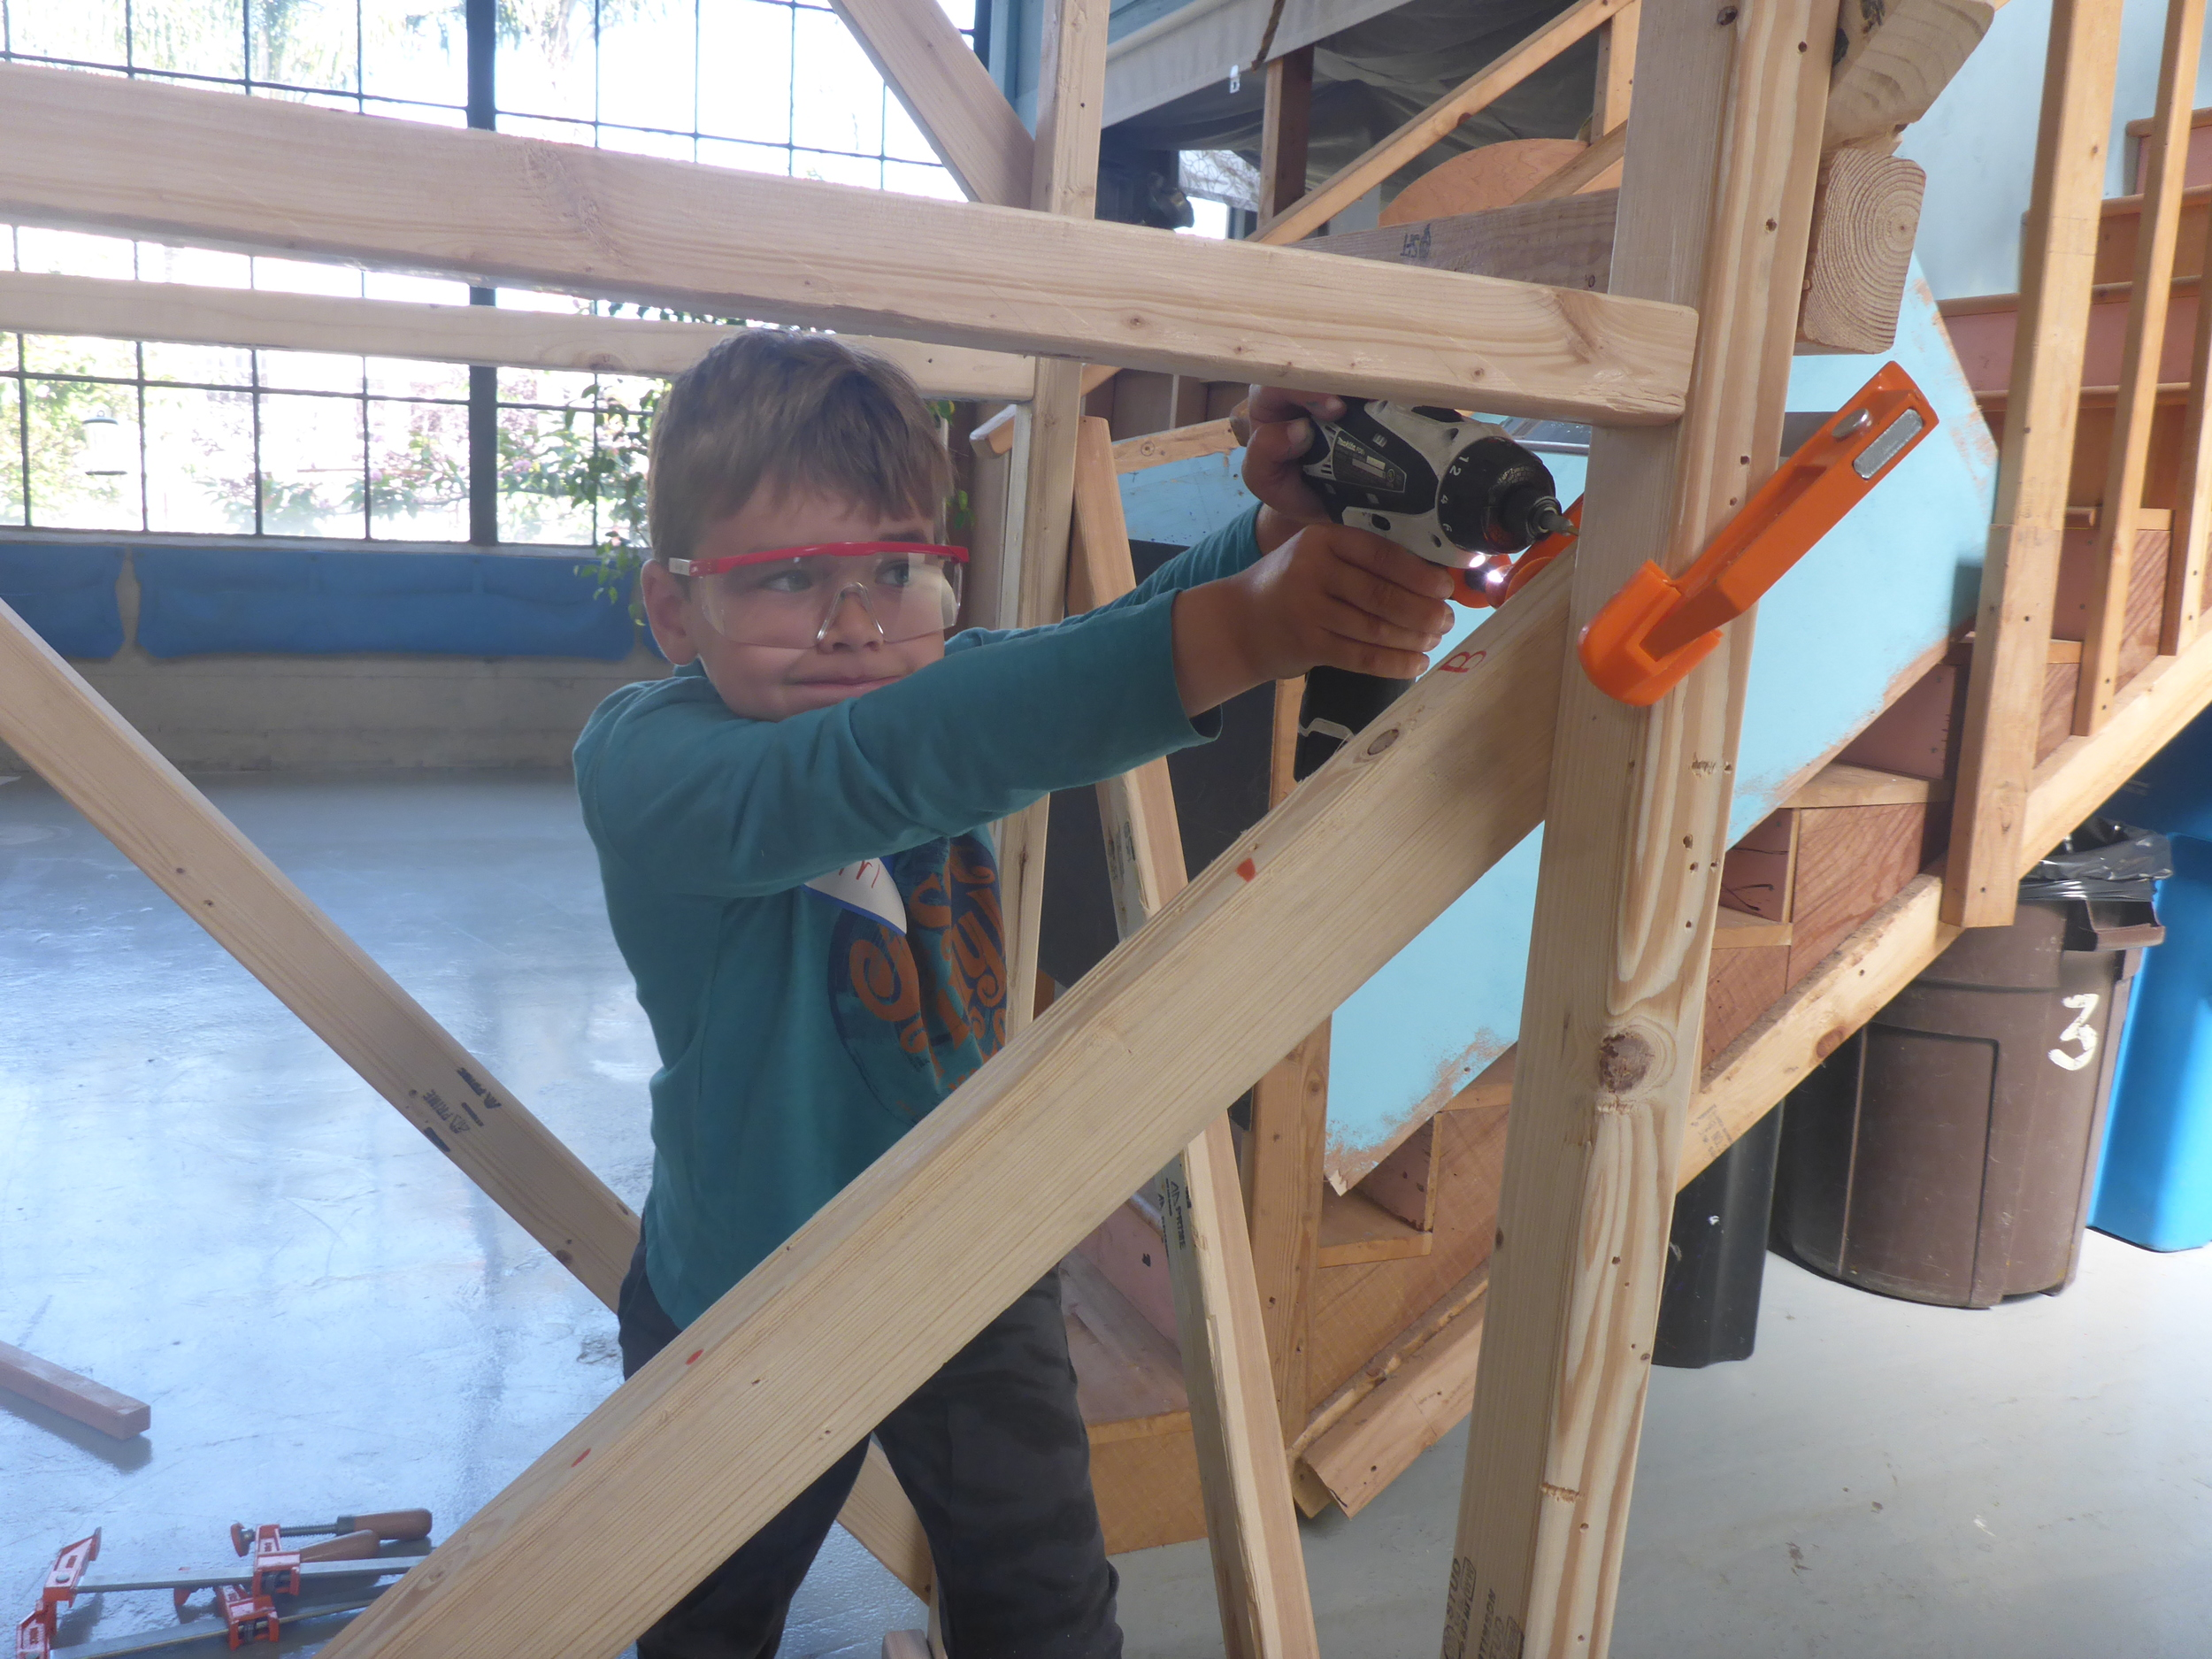 The only disadvantage to building really tall things is that it's sometimes verydifficult to drive in screws that are above shoulder level. Ari is intensely focused on completing the bridge supports, even though the work is really hard!